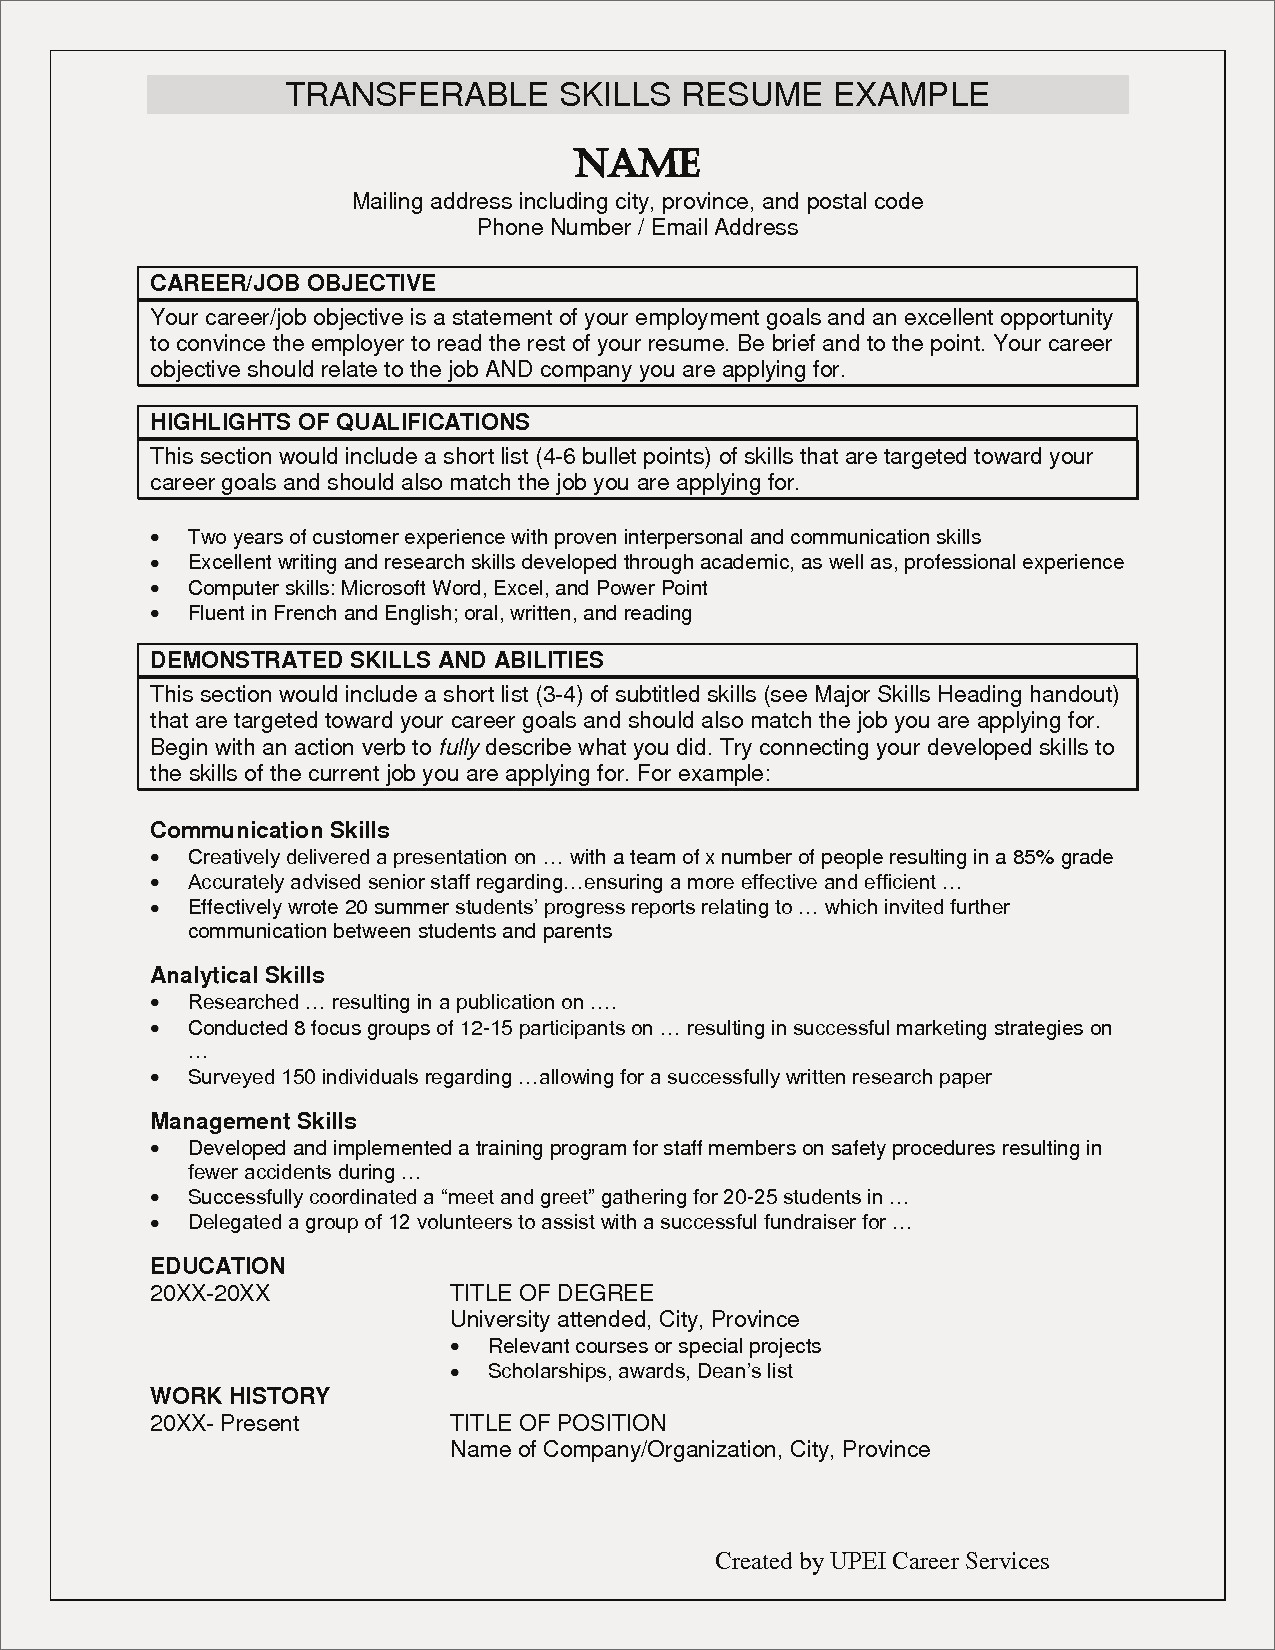 Focus Resume - Resume Career Objectives Refrence Career Focus Resume New Career